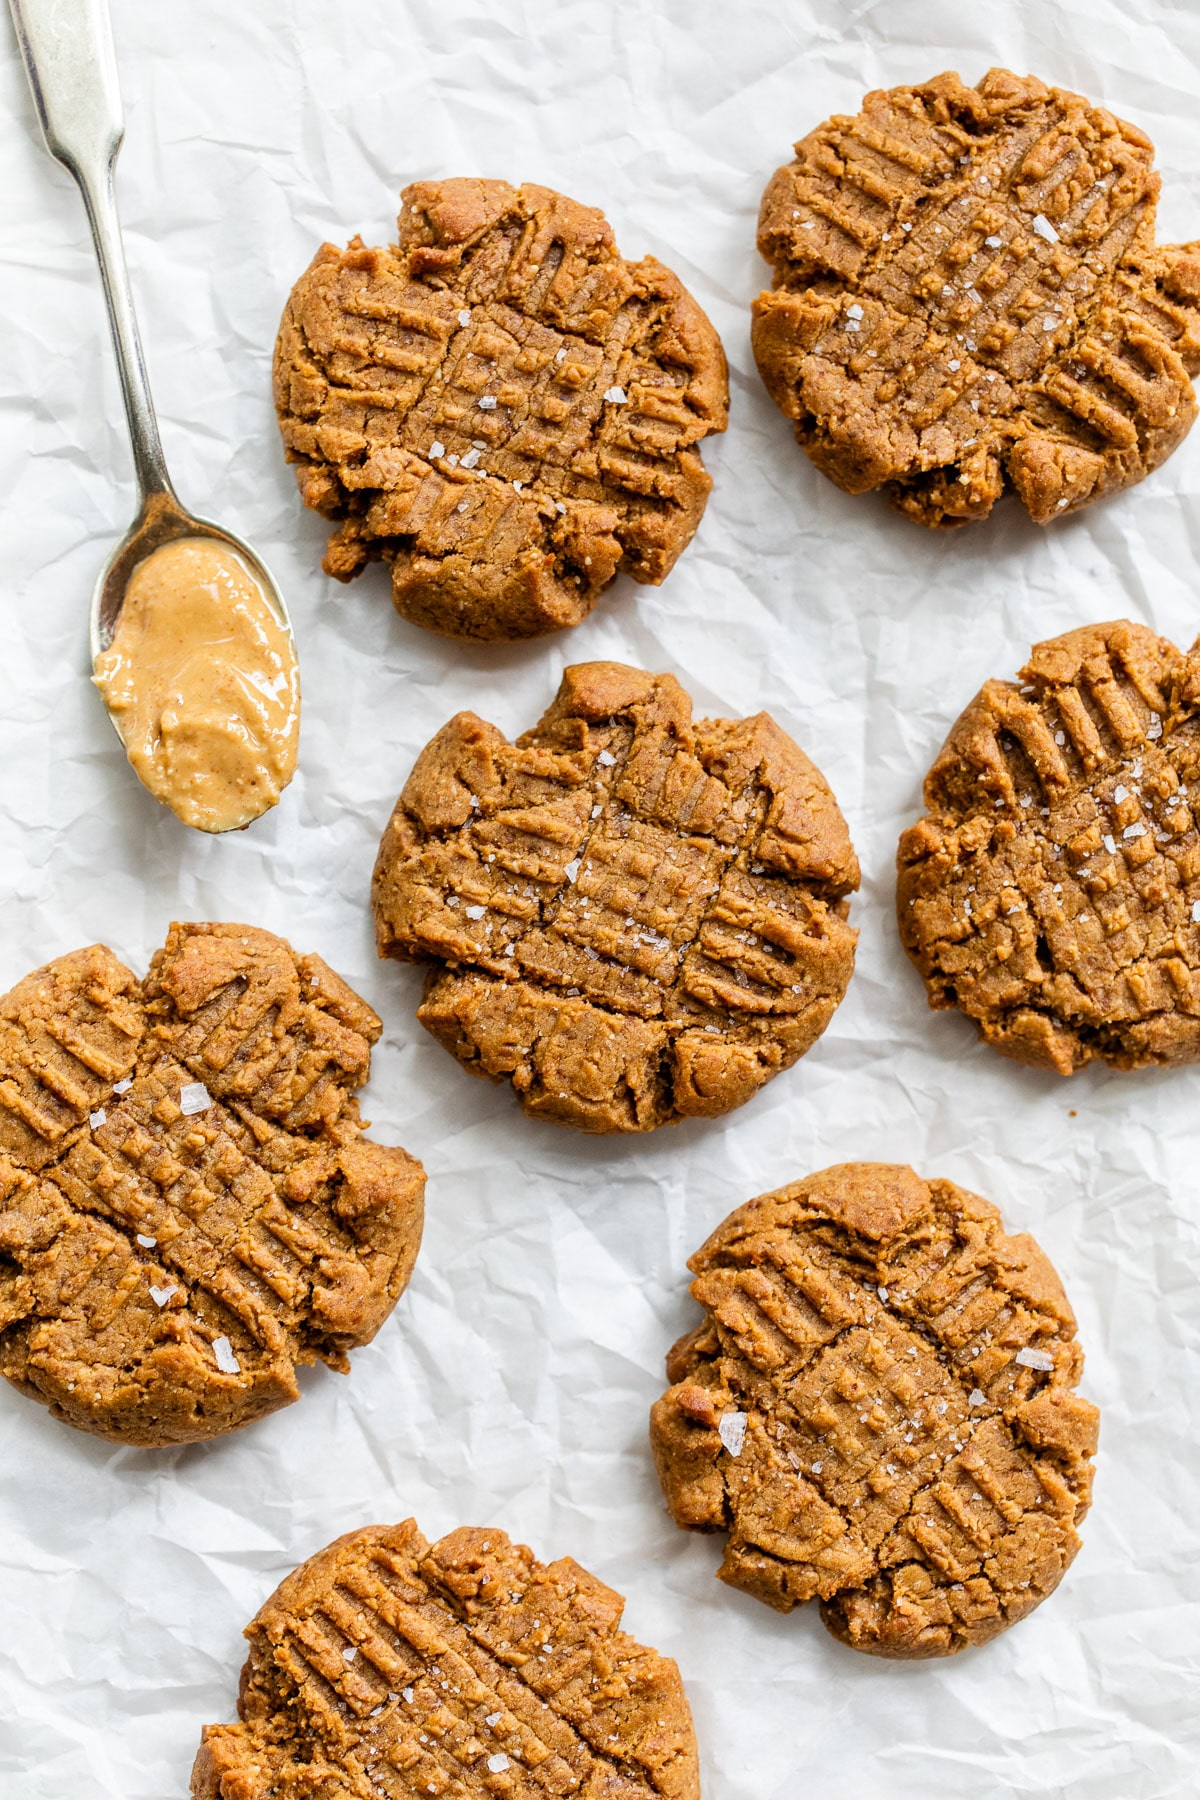 peanut butter cookies on parchment beside a spoon of peanut butter